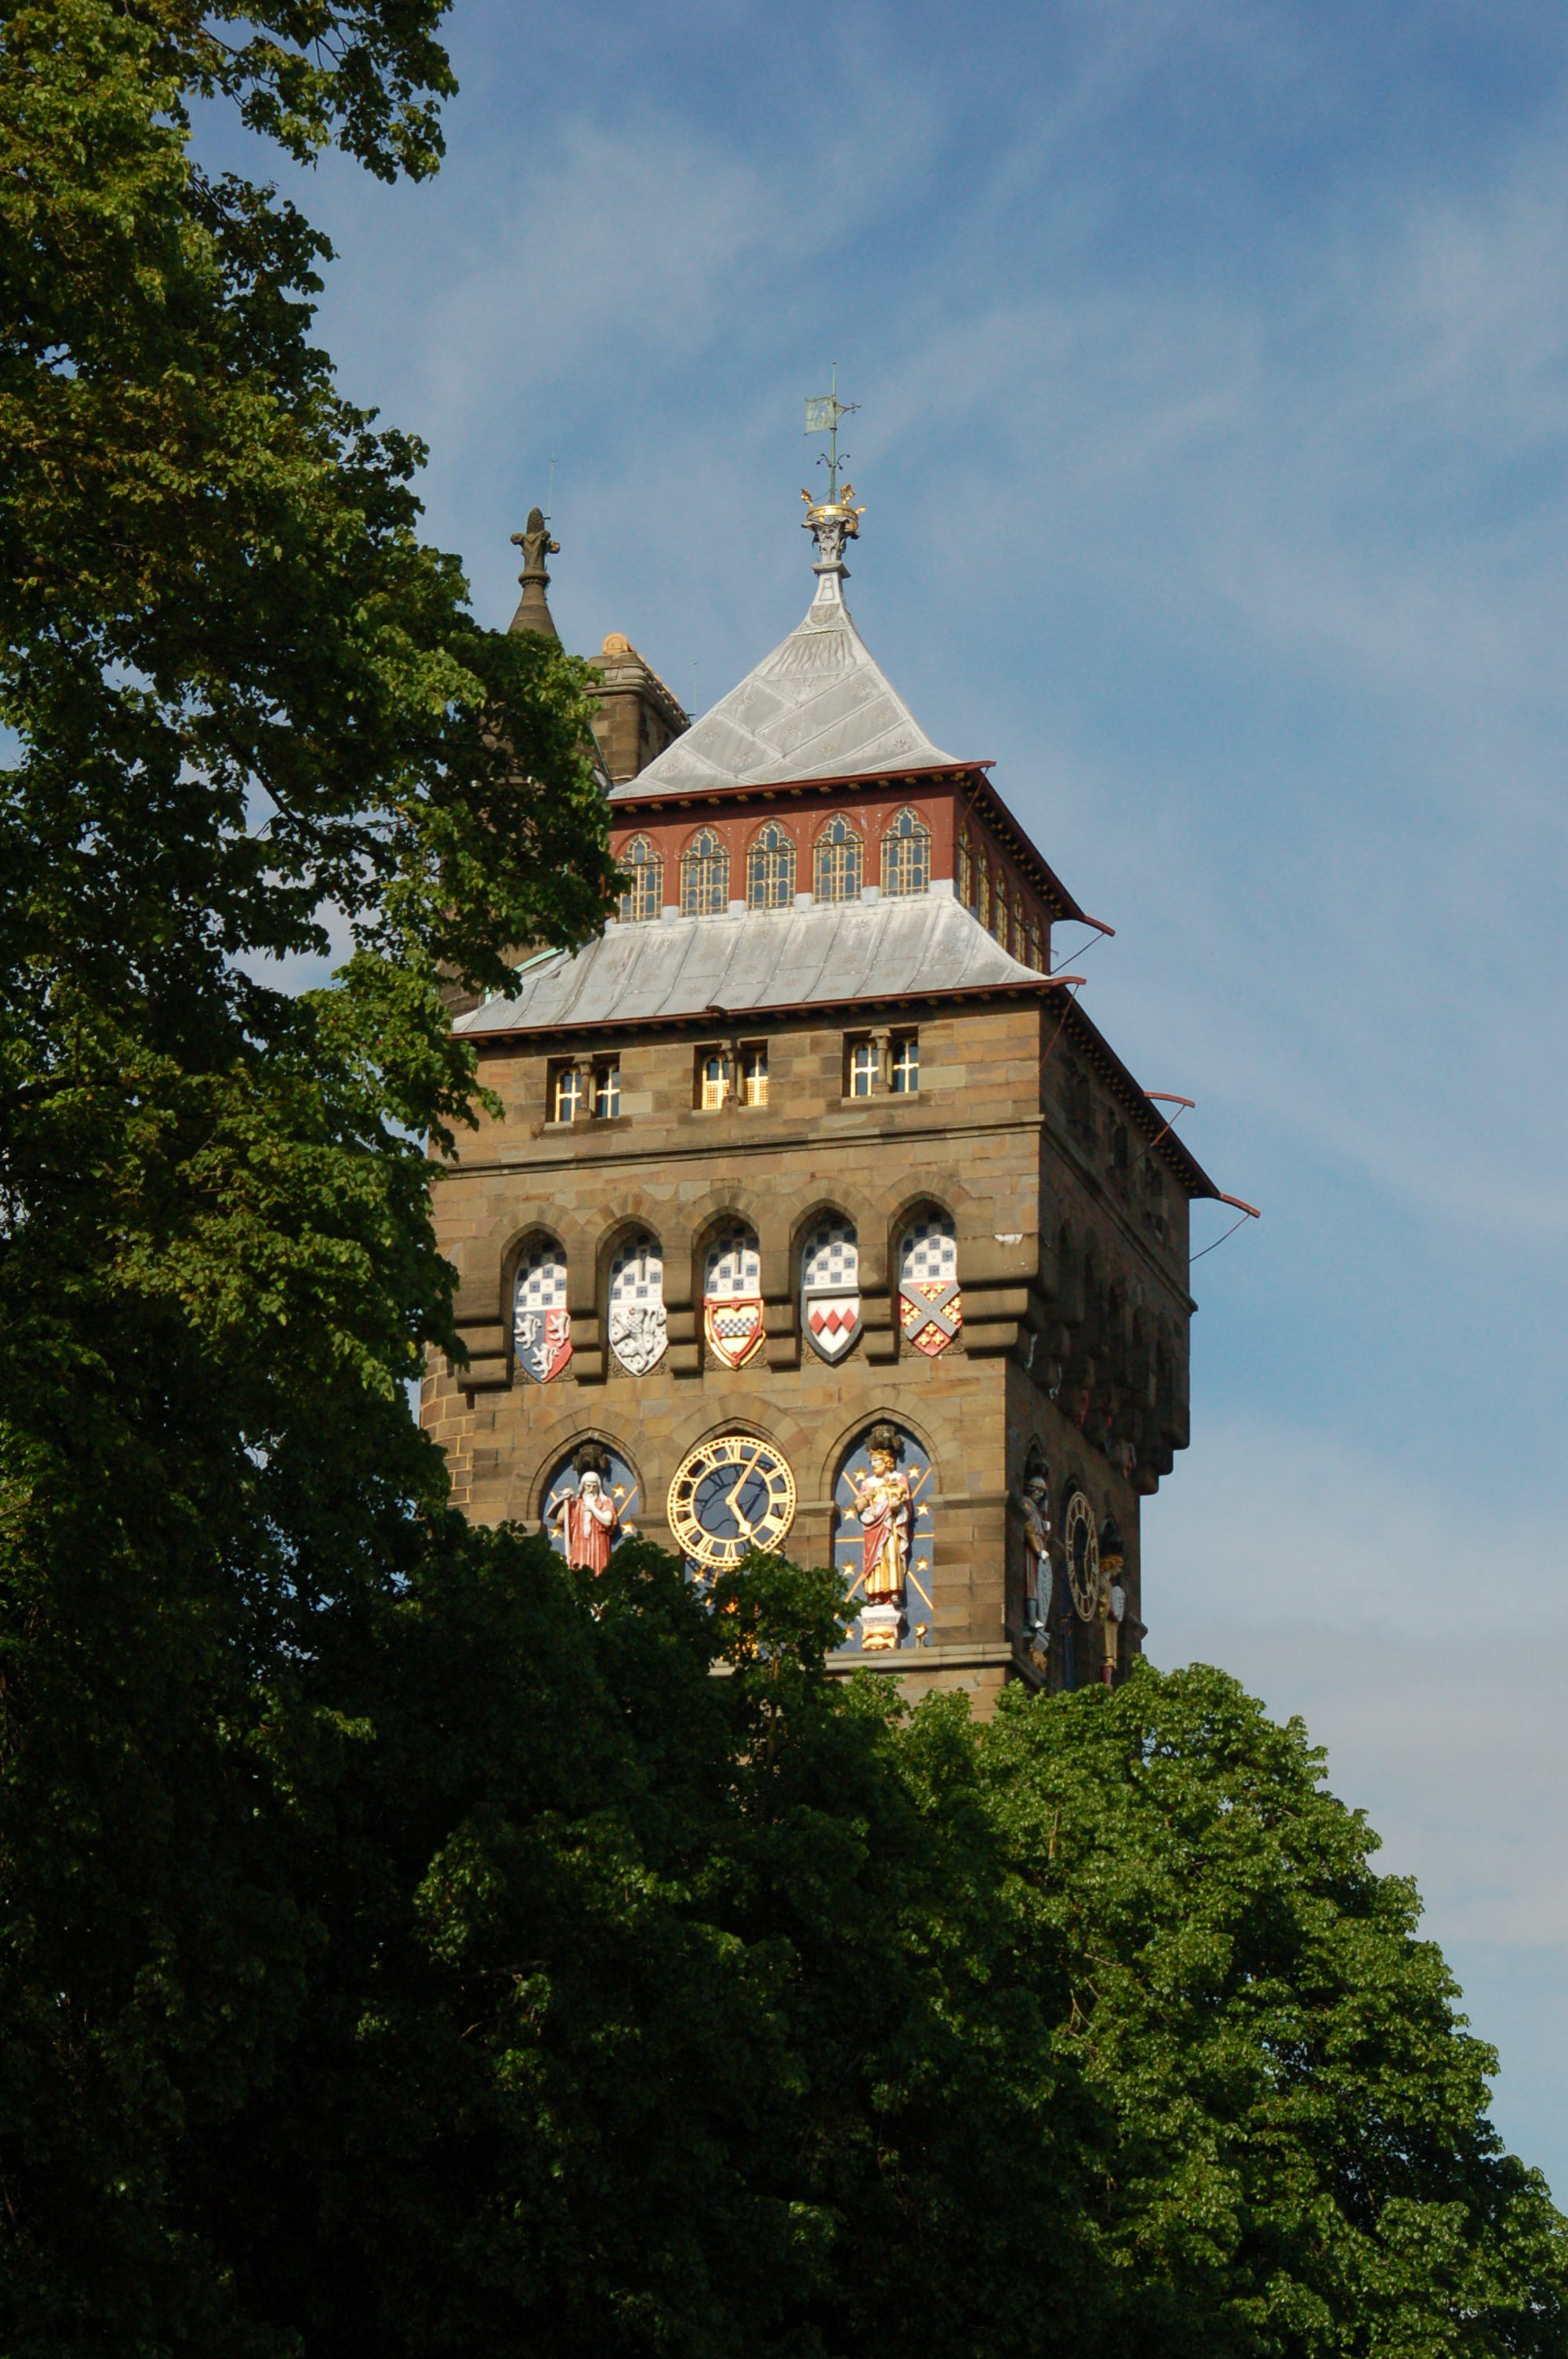 Bell Tower of Cardiff Castle